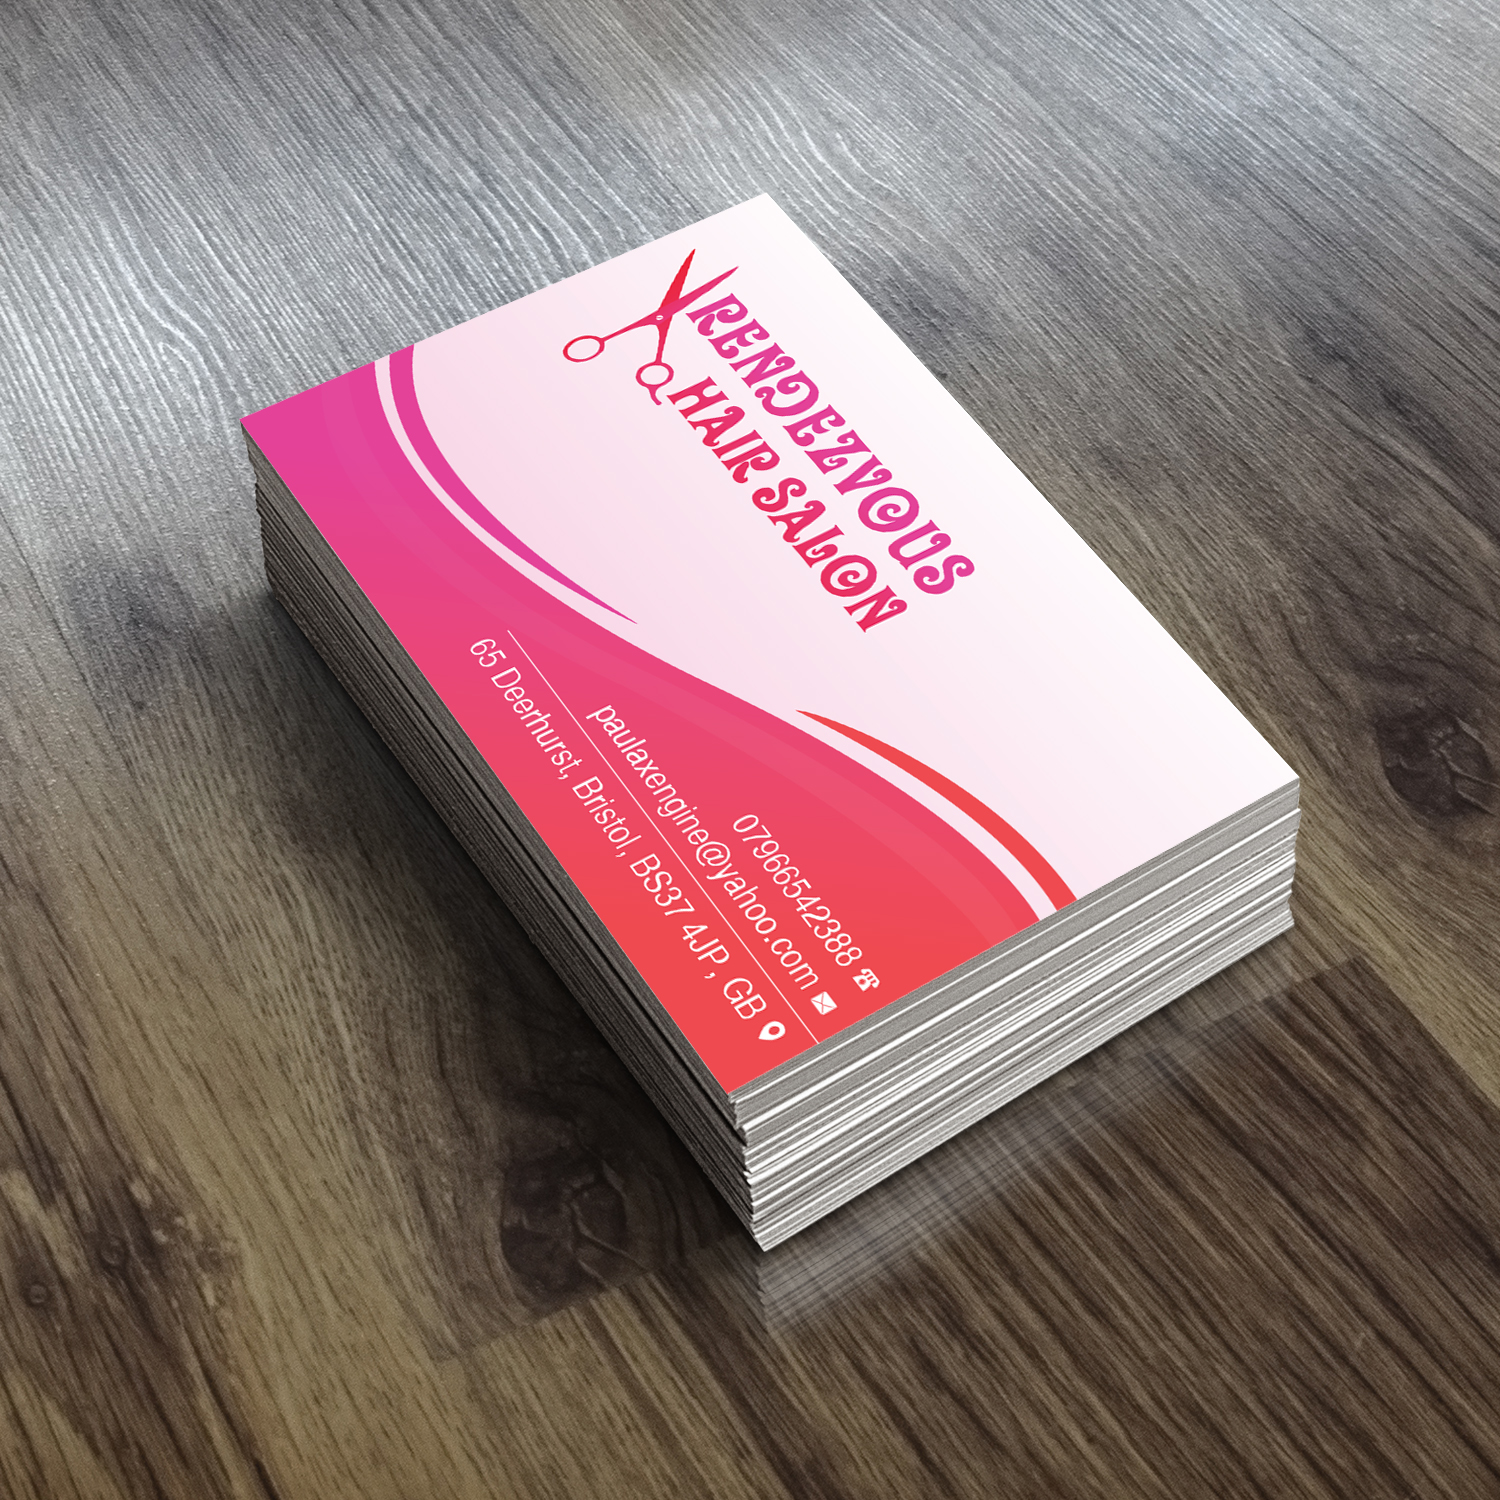 Conservative Economical Beauty Salon Business Card Design For A